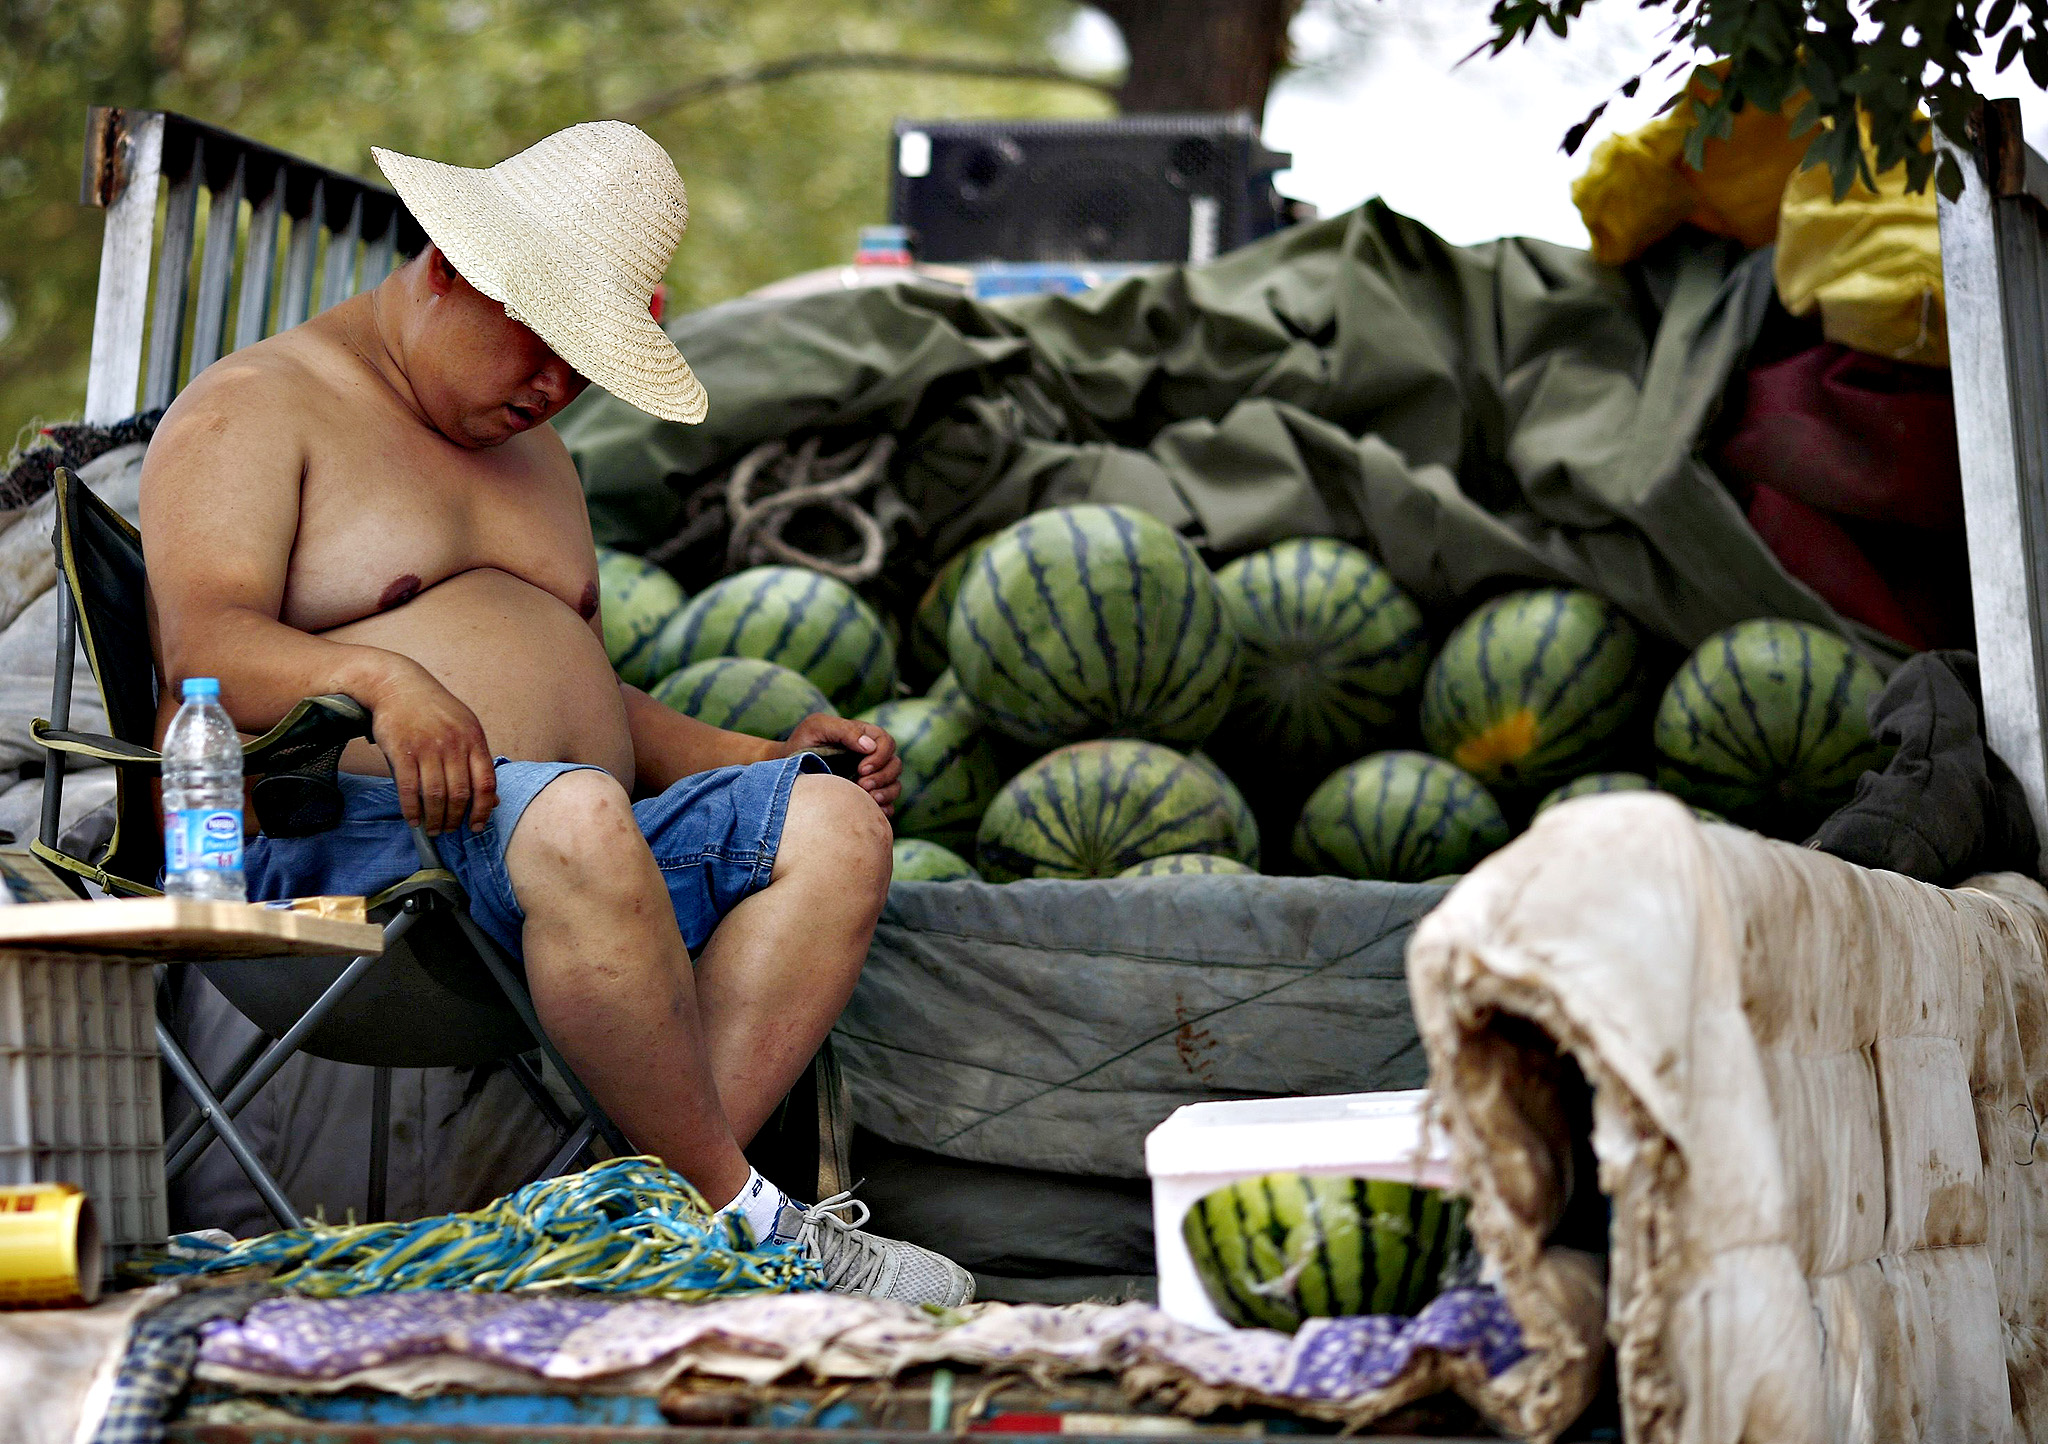 A watermelon vendor takes a nap while waiting for customers during a hot day in Beijing June 5, 2014.